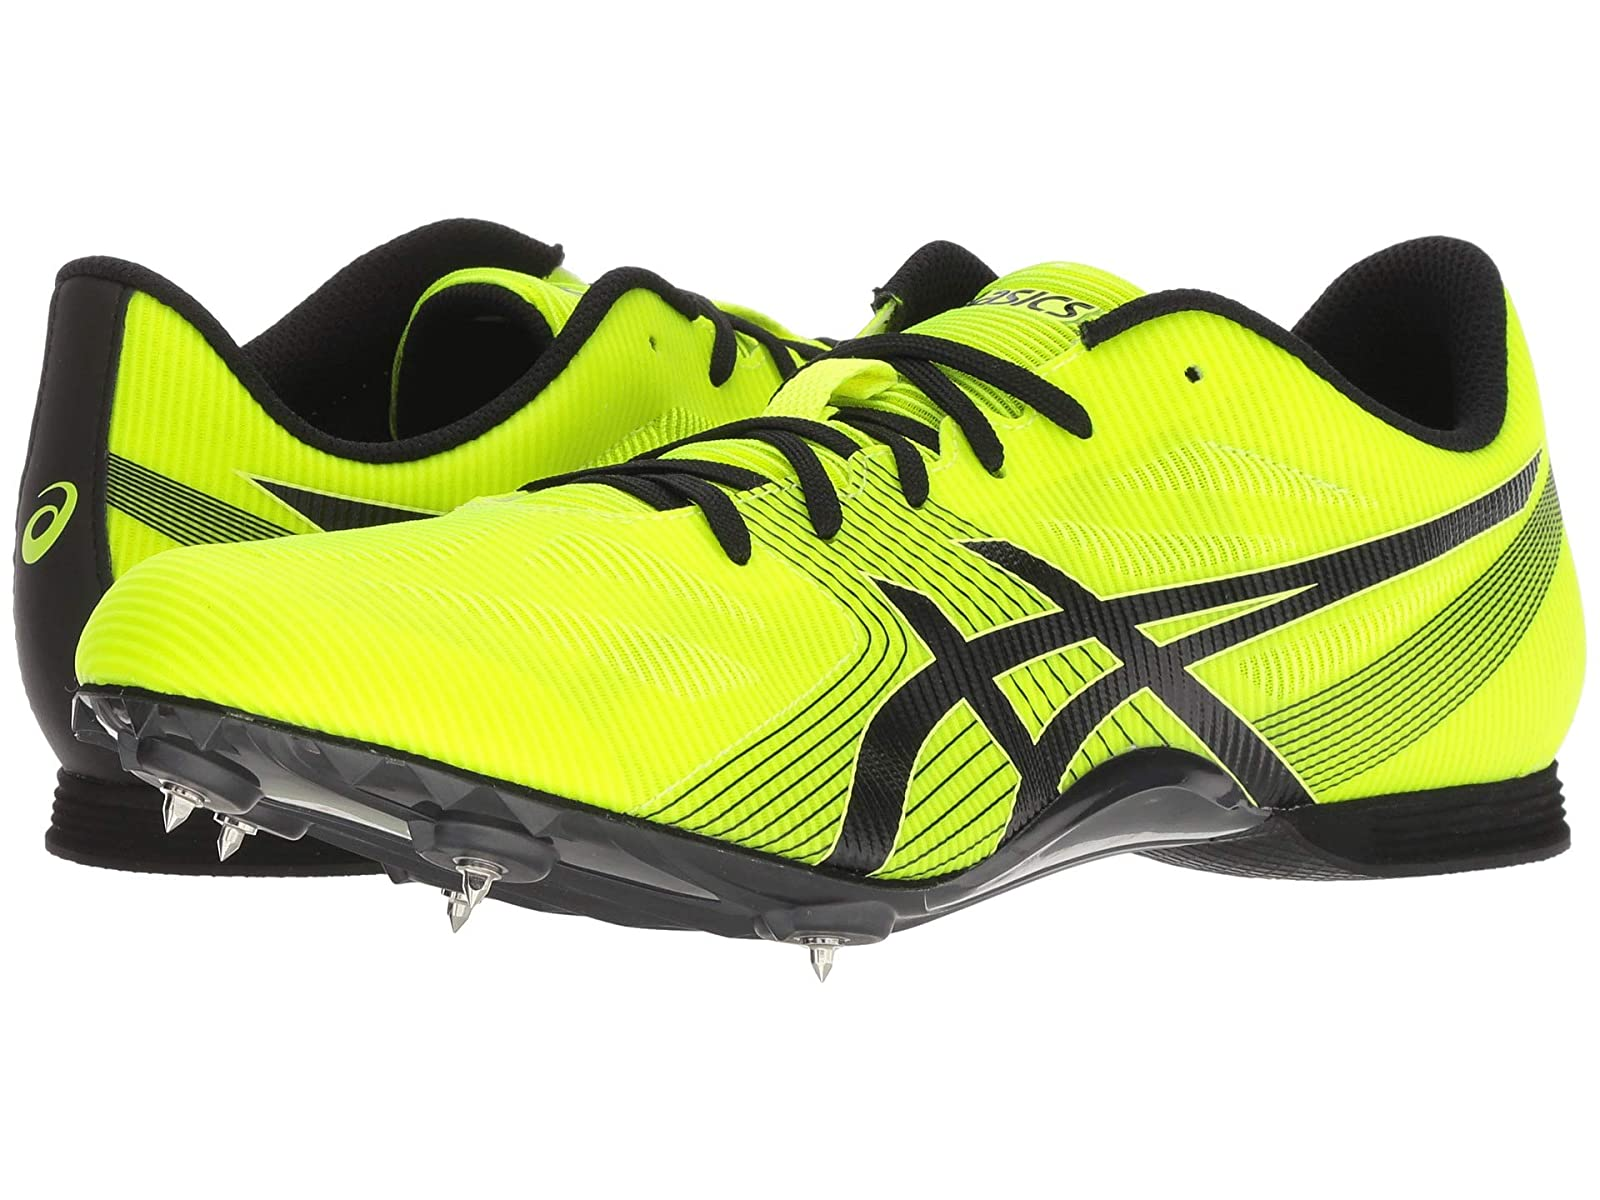 ASICS Hyper® MD 6Cheap and distinctive eye-catching shoes